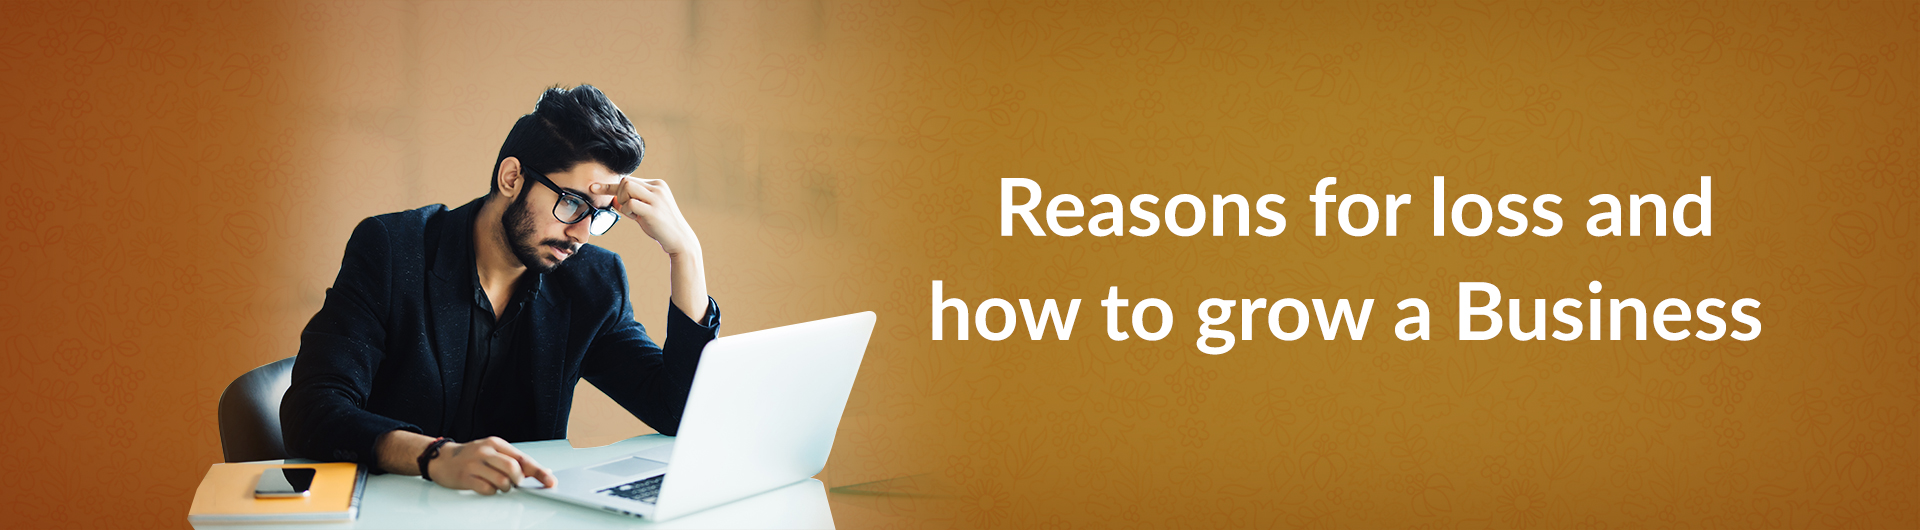 Reasons for loss and how to grow a business